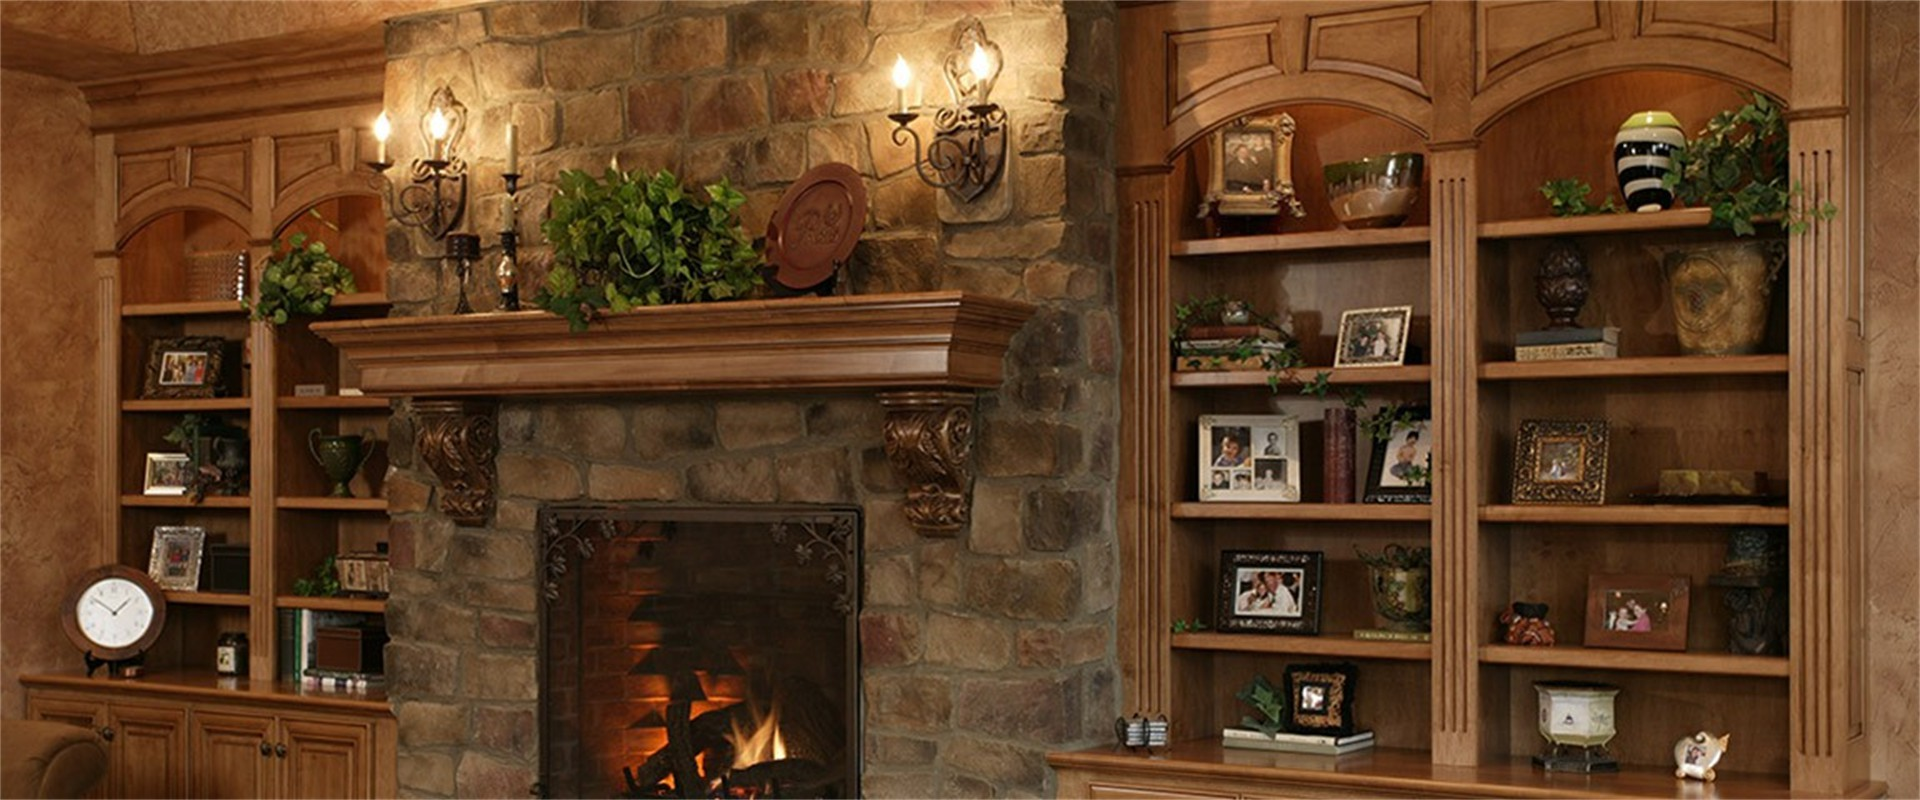 fireplace_and_bookshelves